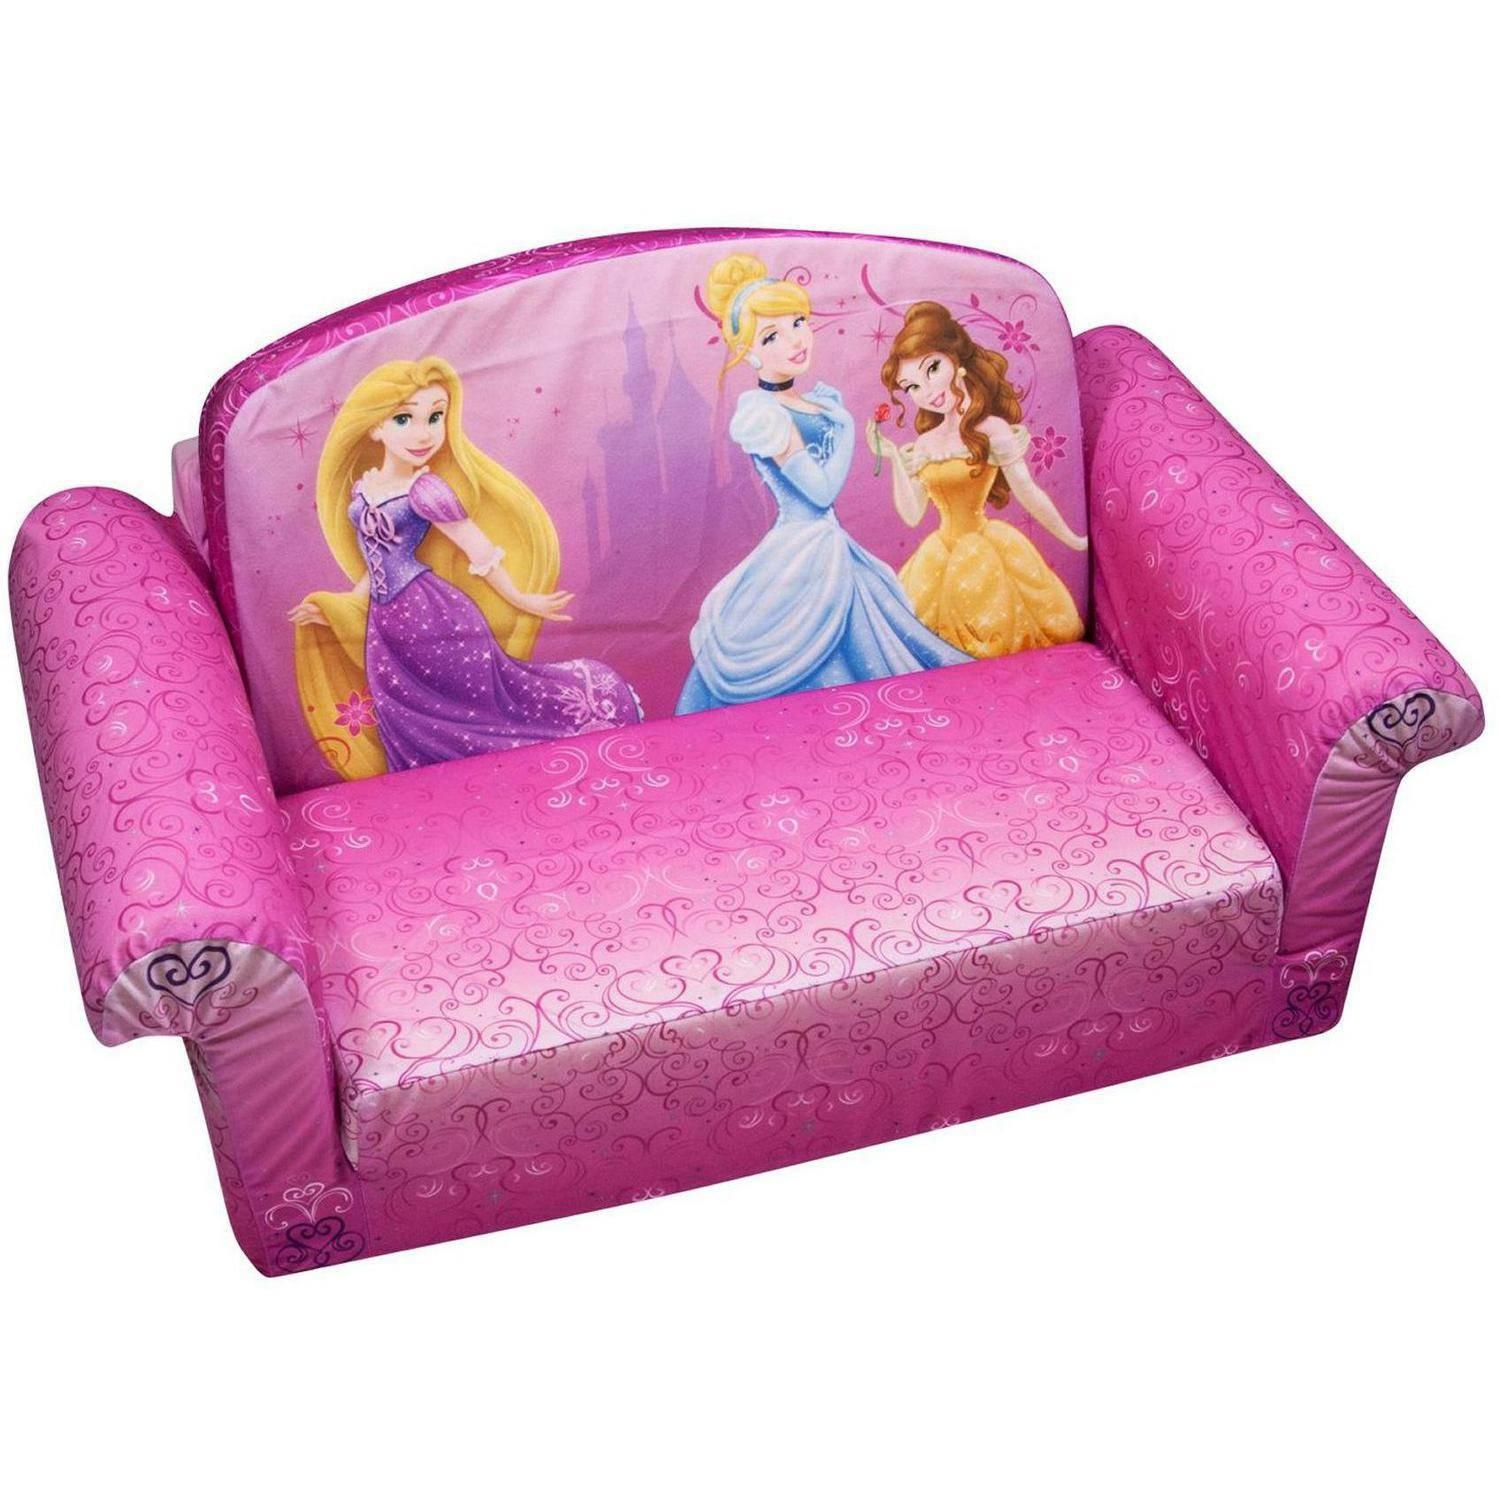 Featured Image of Disney Princess Sofas